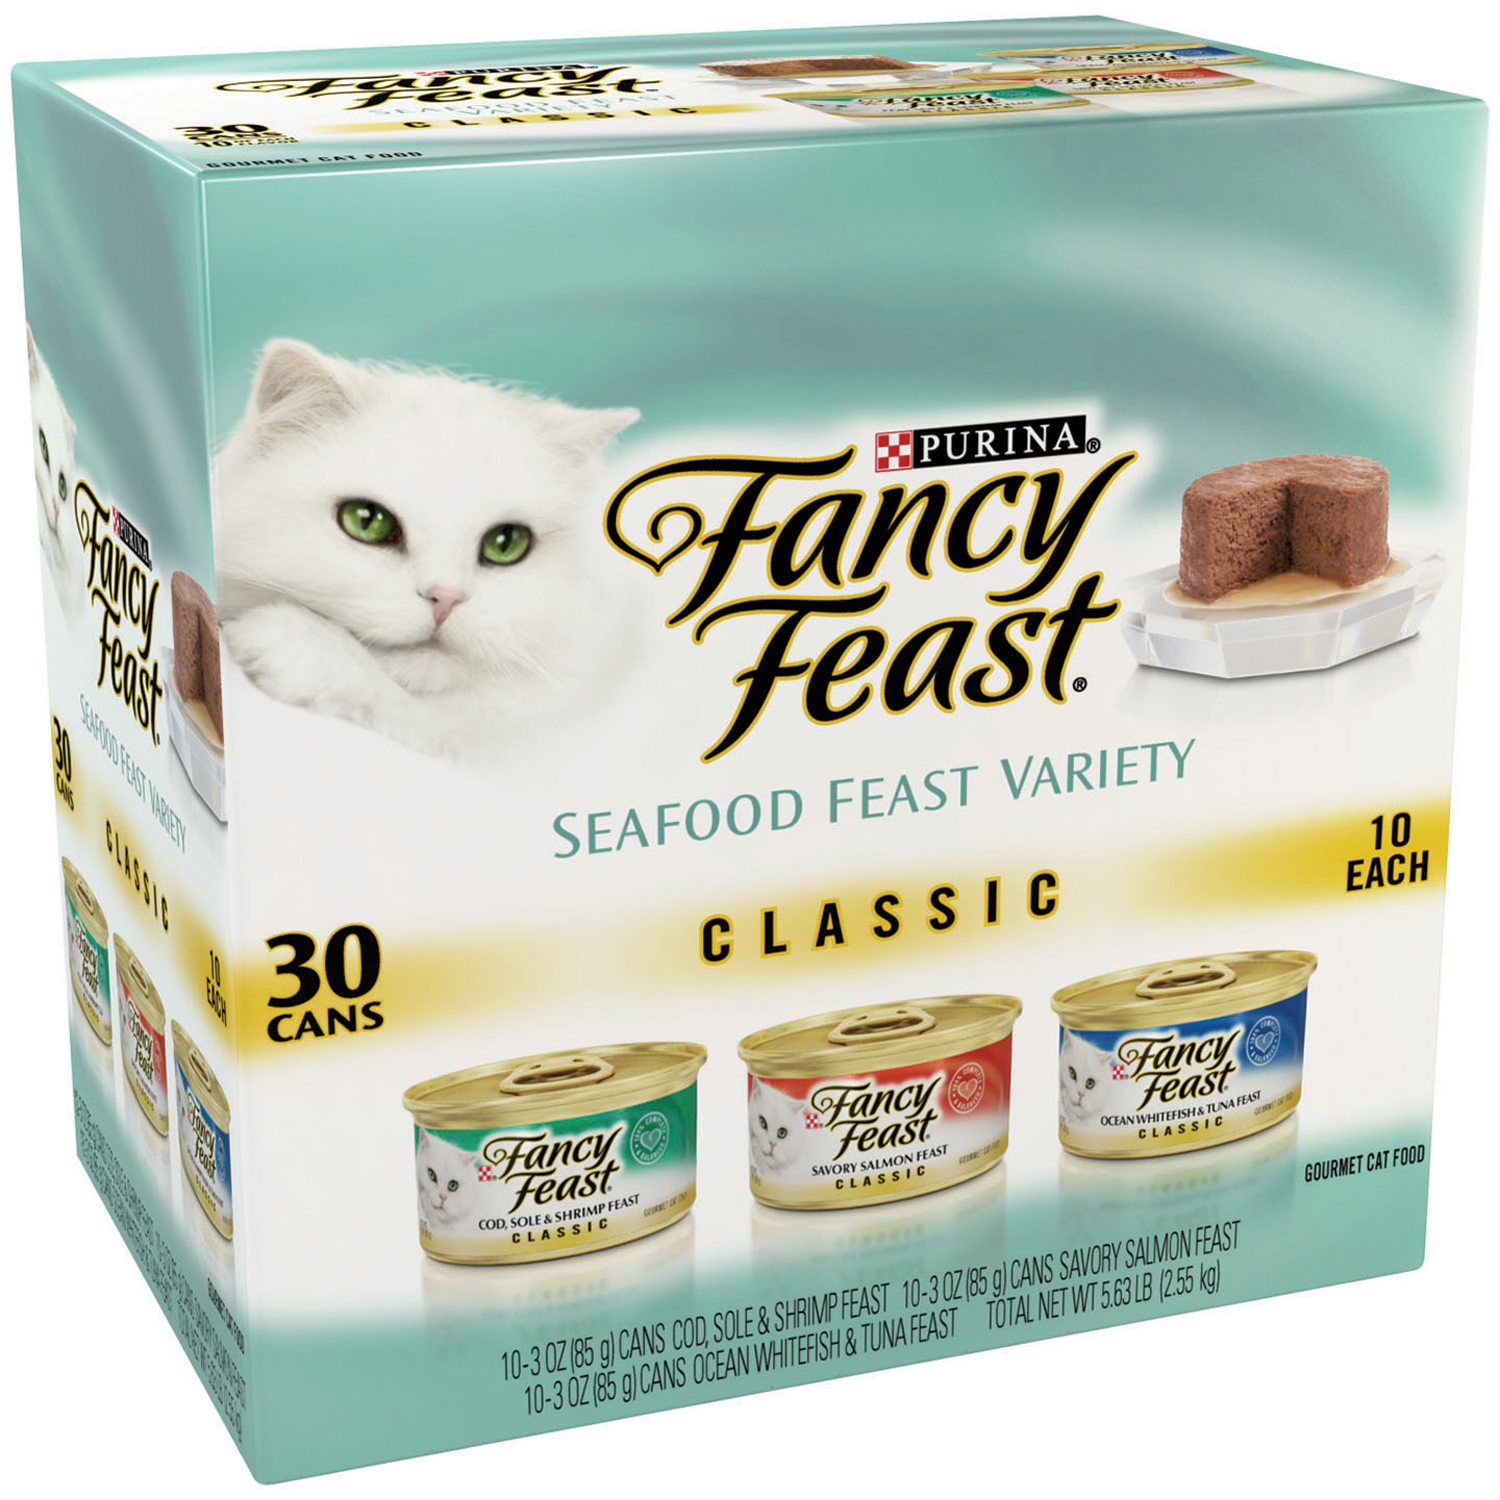 Purina Fancy Feast Classic Paté Seafood Feast Variety Cat Food 30-3 oz. Cans